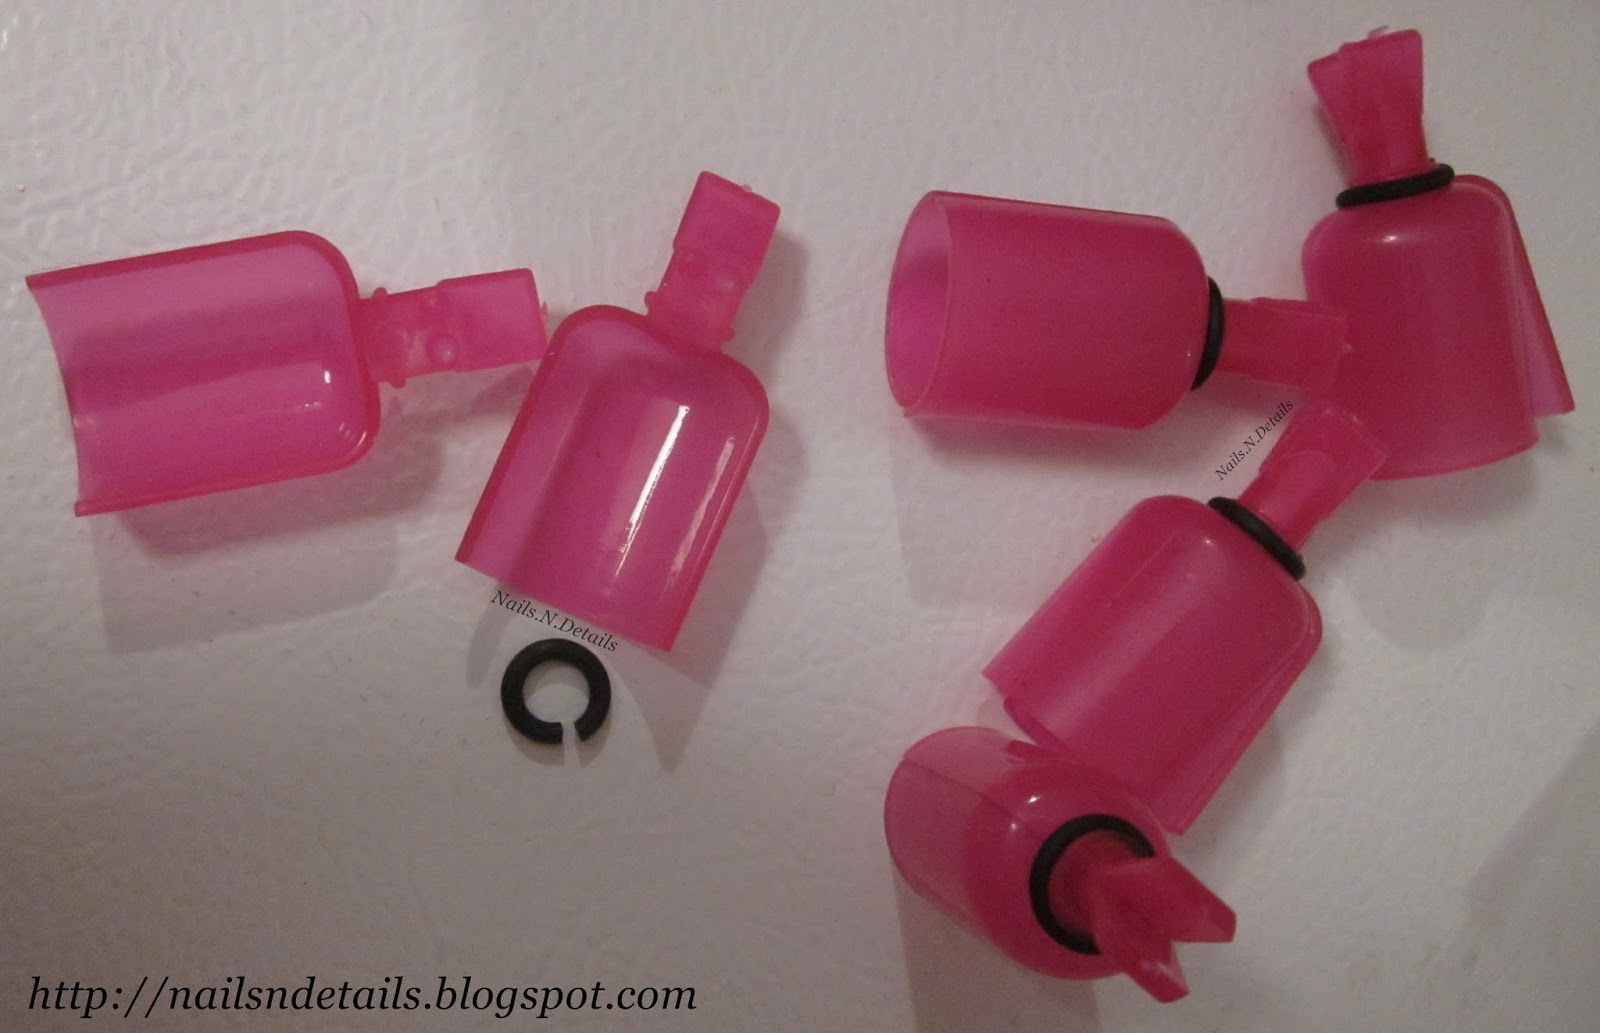 Nails N Details Nail Polish Removal Gel Off Clips